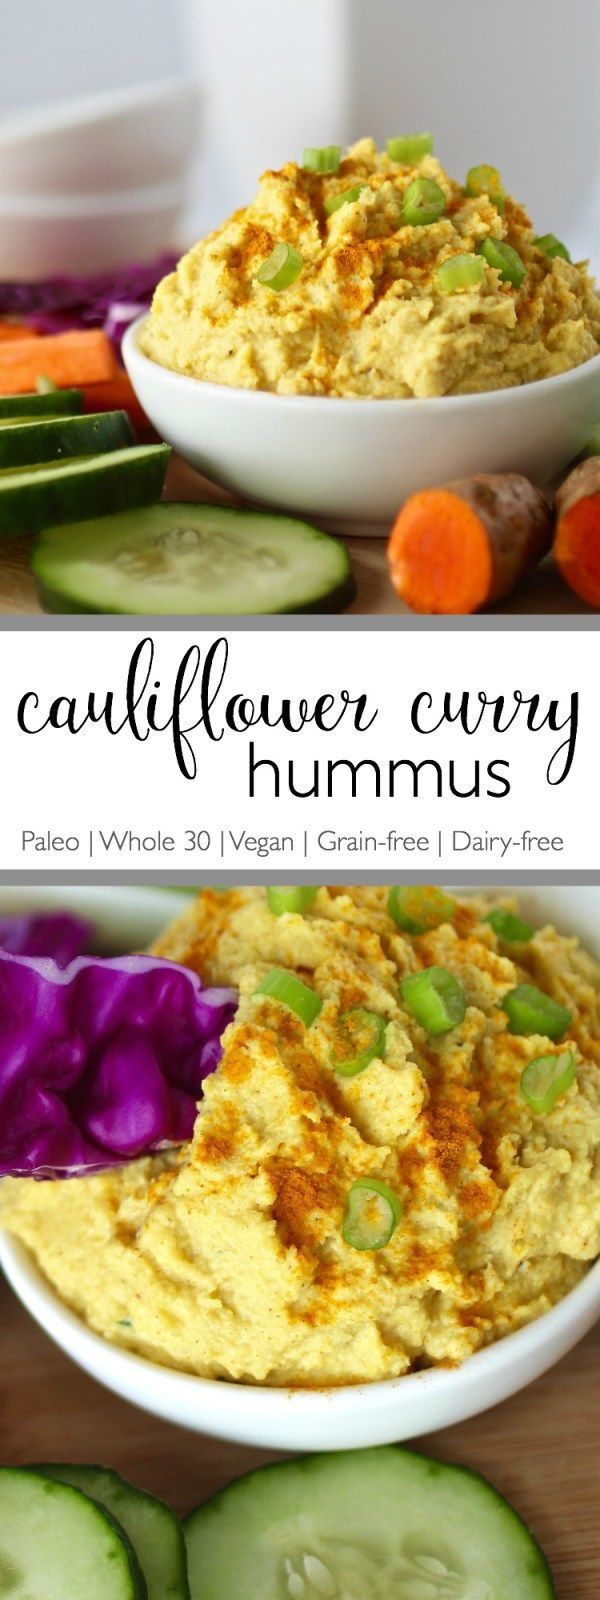 A recipe inspired by a favorite curry flavored hummus. This Cauliflower Curry Hummus is bean-free, whole-30 friendly and perfect for dipping veggies into. | Paleo | Whole 30 | Vegan | Grain-free